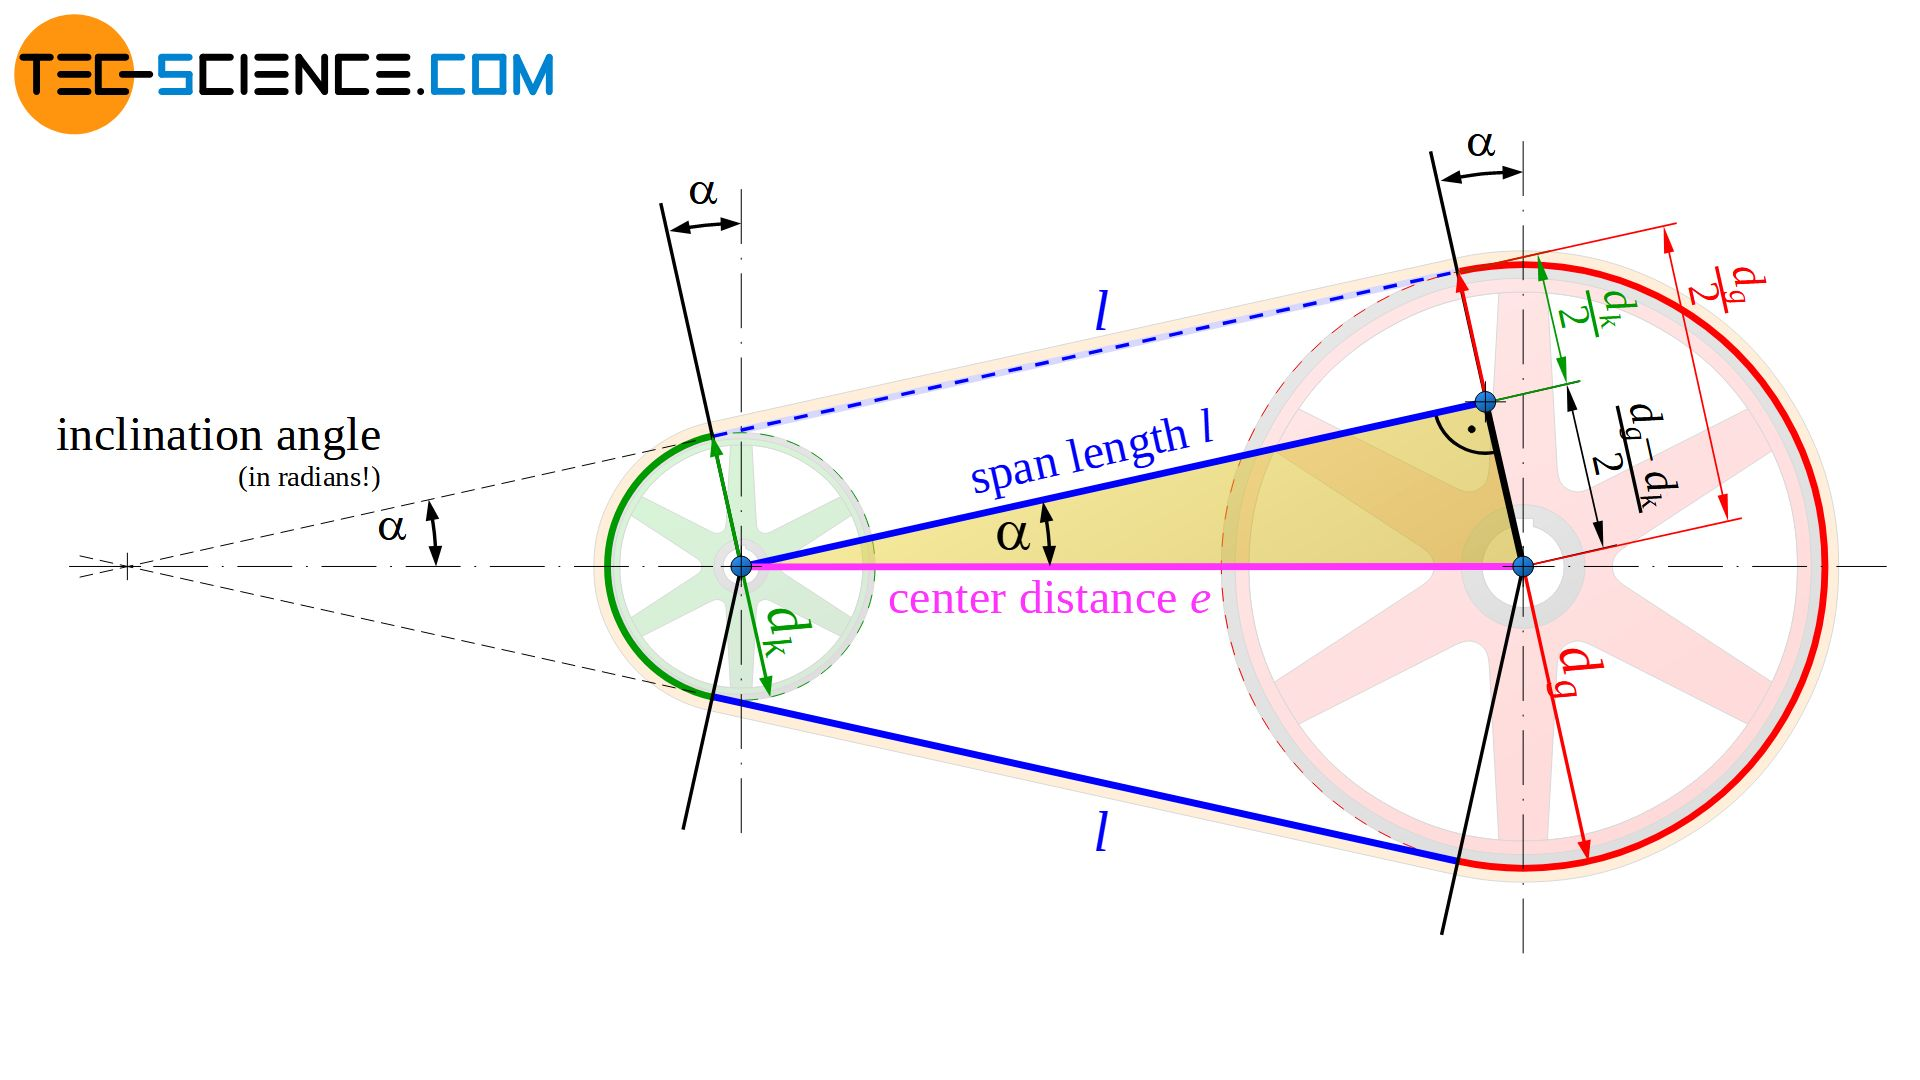 Calculation of the inclination angle